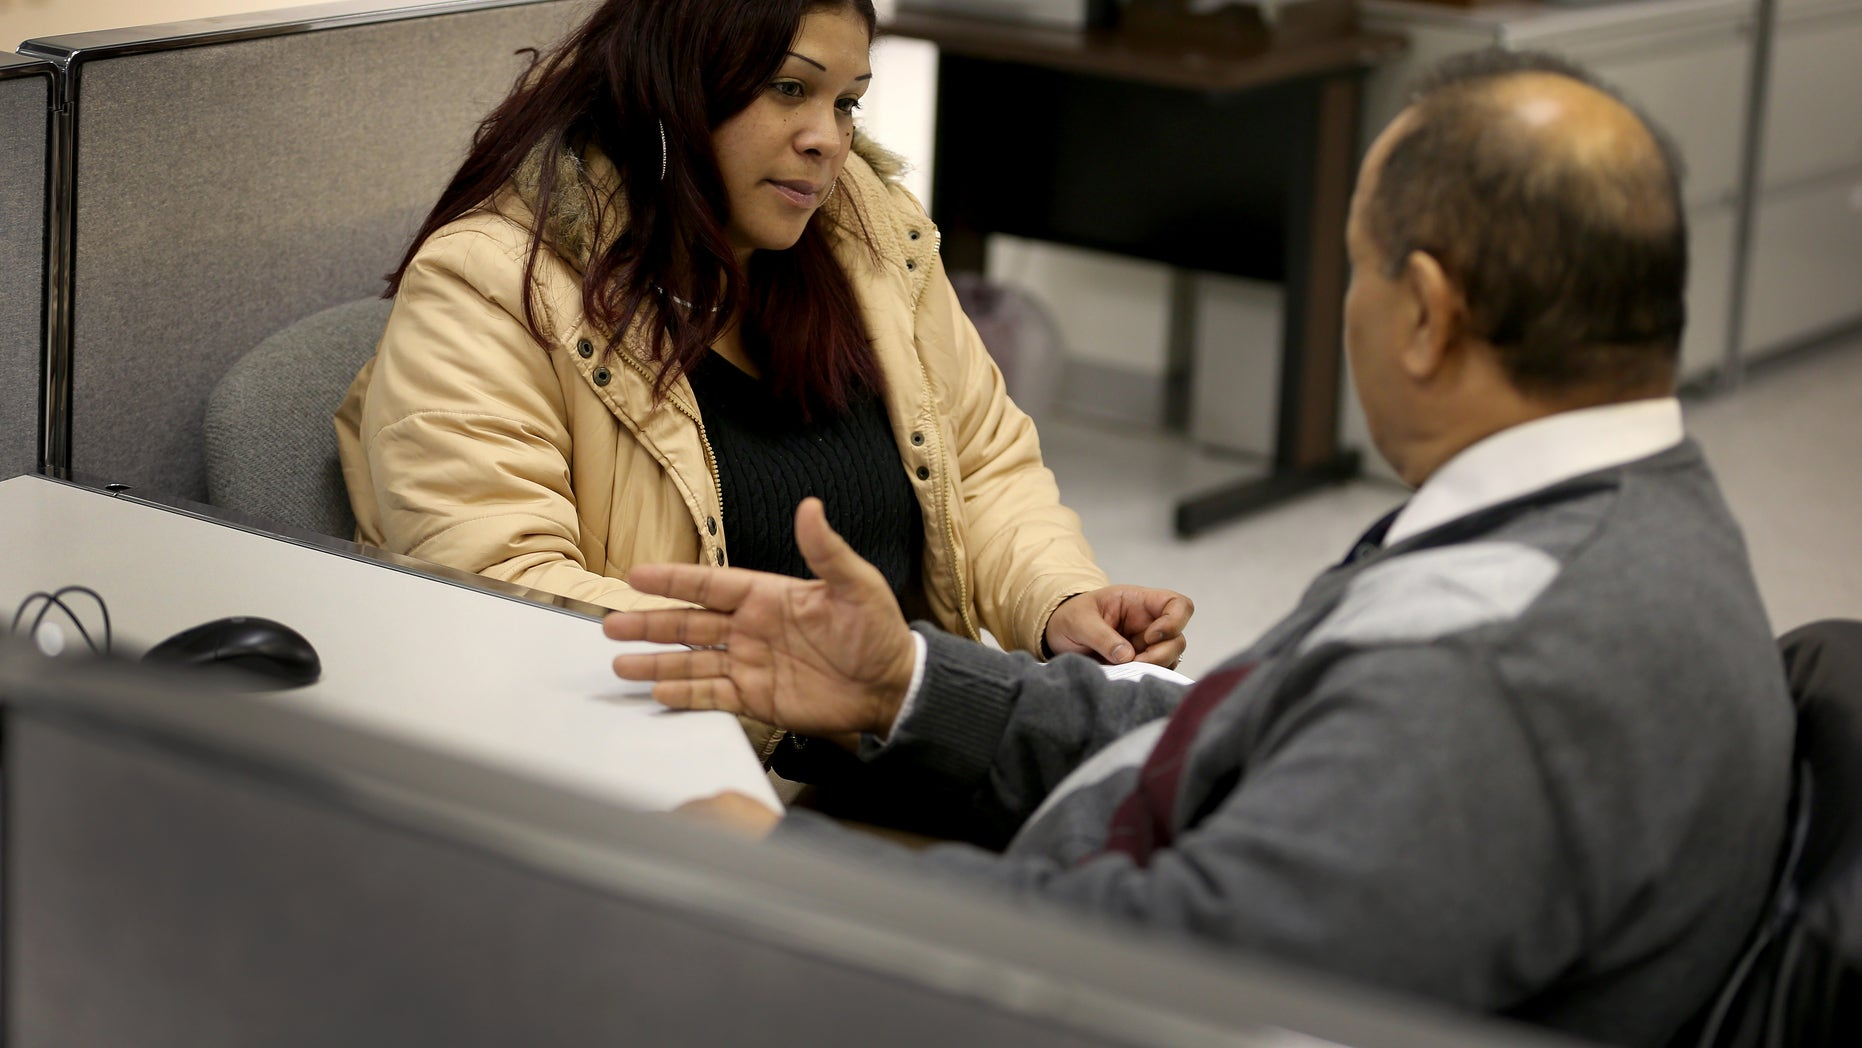 NORTH MIAMI, FL - JANUARY 07: Job seeker, Jennifer Quinones, speaks with career specialists, Shehata Ali, at a Workforce One Employment Solutions center as she looks for a job after being out of work for more than a year on January 7, 2014 in North Miami, Florida. In Washington, DC today a bipartisan measure in the Senate to extend the Emergency Unemployment Compensation (EUC) program for three months passed a procedural vote.  (Photo by Joe Raedle/Getty Images)